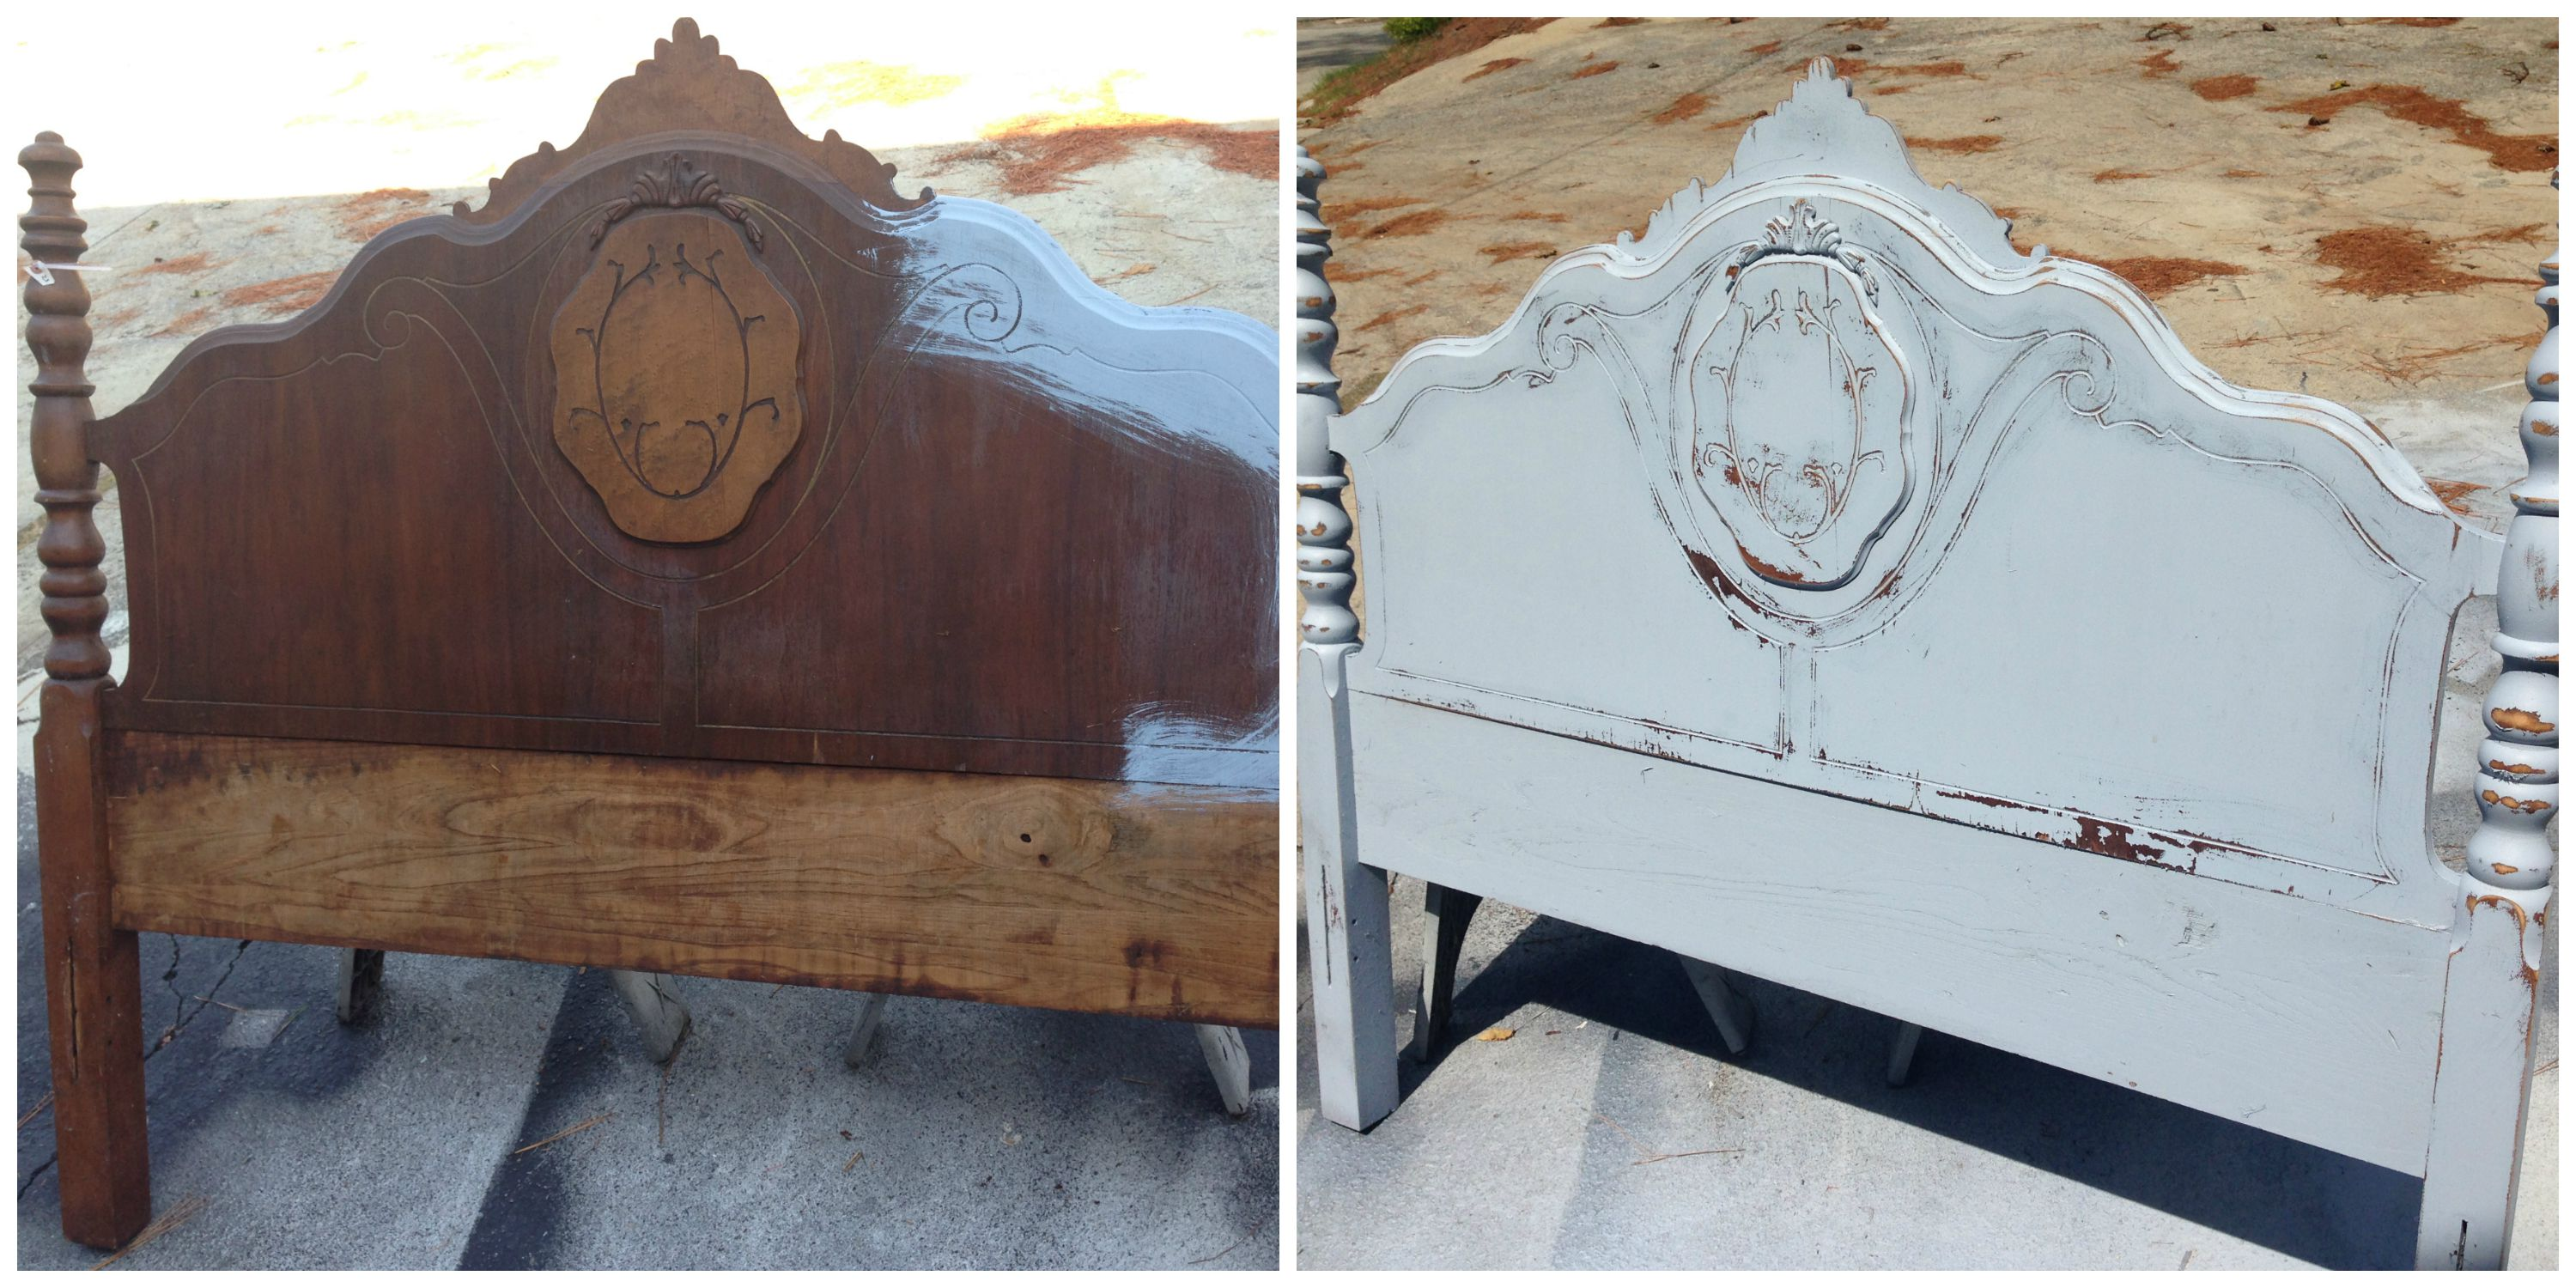 The Blue Building Antiques Alabaster, AL Upcycle Project Transformation with Paint headboard